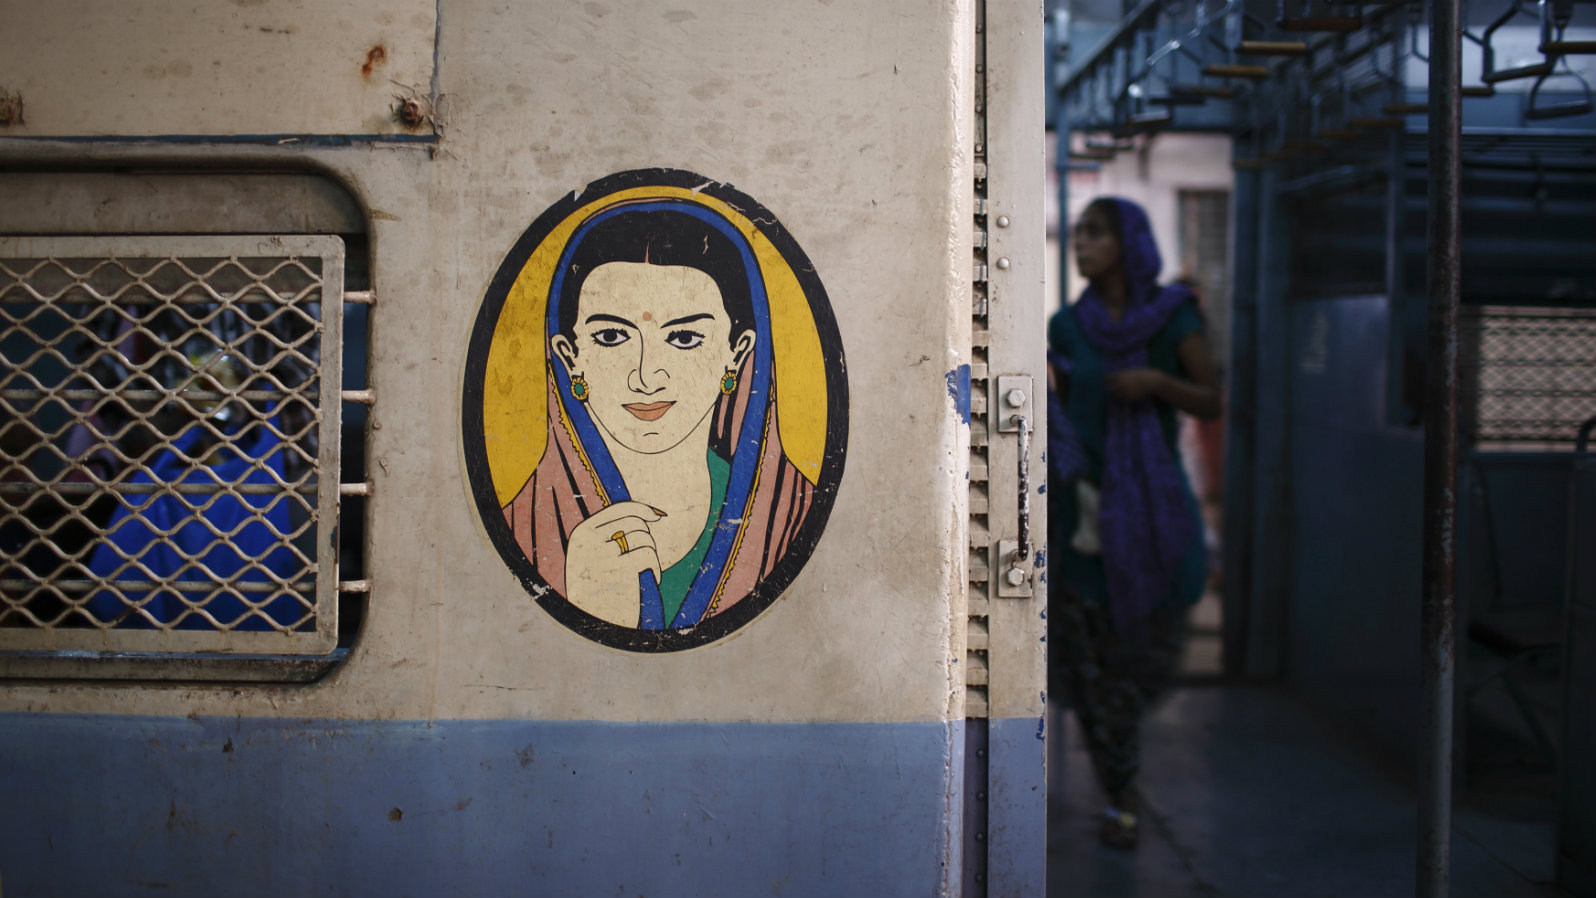 A portrait of a woman is seen near the entrance of the female compartment of a suburban train at Chhatrapati Shivaji Terminus Railway Station in Mumbai November 2, 2012. In India some train compartments, or sometimes whole trains, are reserved specifically for female passengers in an effort to make their travel easier and more secure. The role and treatment of women in society has recently become a hot political issue in the country, since the Dec. 16 gang rape of a 23-year-old student in New Delhi, who later died of her injuries, and whose case has led to widespread protests in the region against violence against women. Picture taken November 2, 2012.